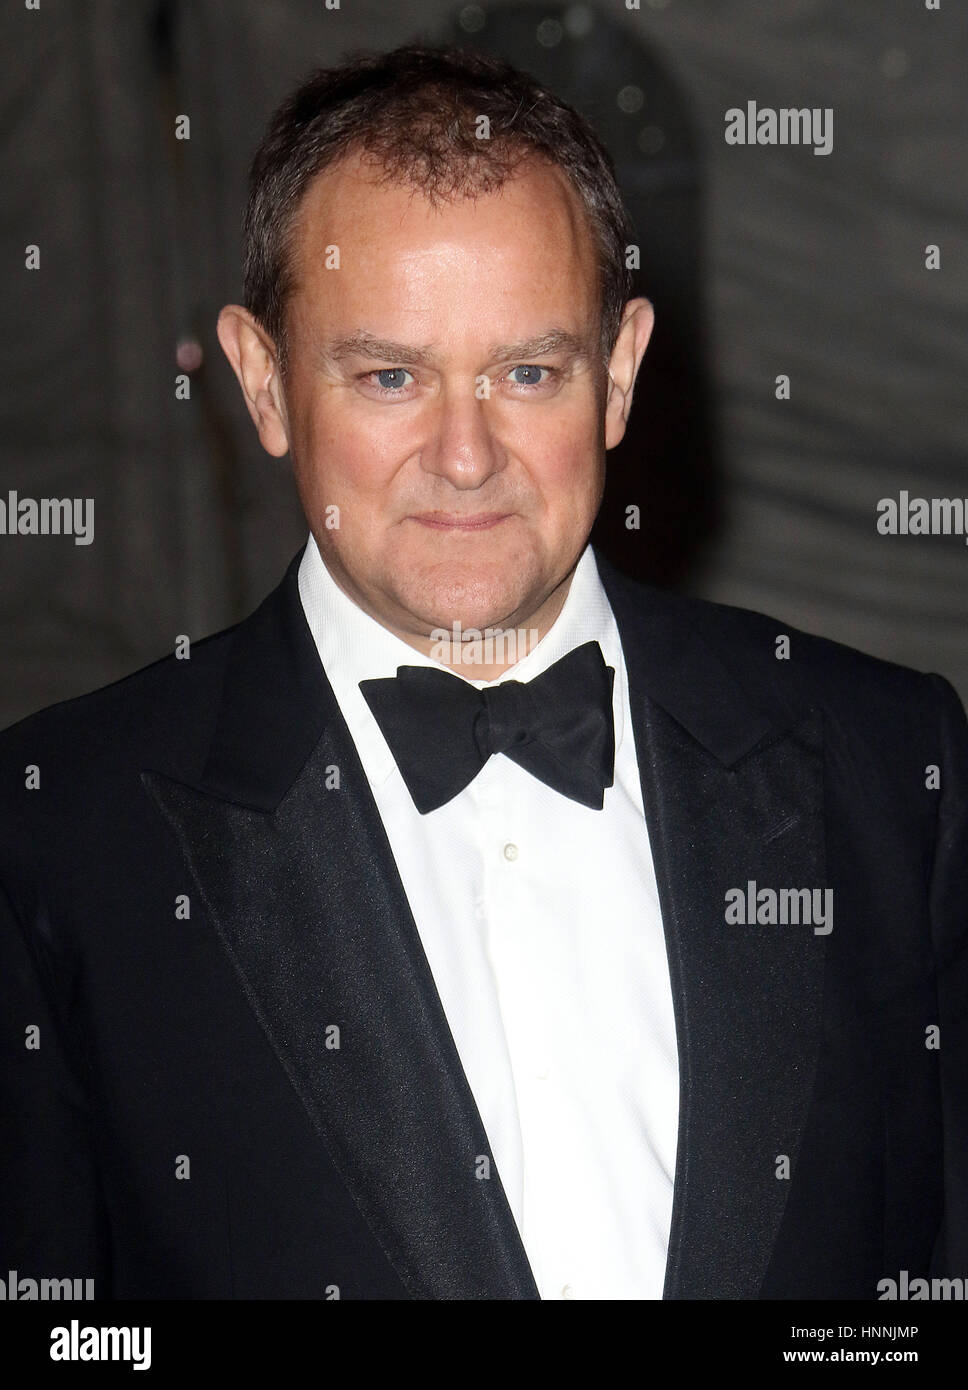 Feb 02, 2017  - Hugh Bonneville attending The British Asian Trust reception and dinner, Guildhall - Red Carpet Arrivals - Stock Image